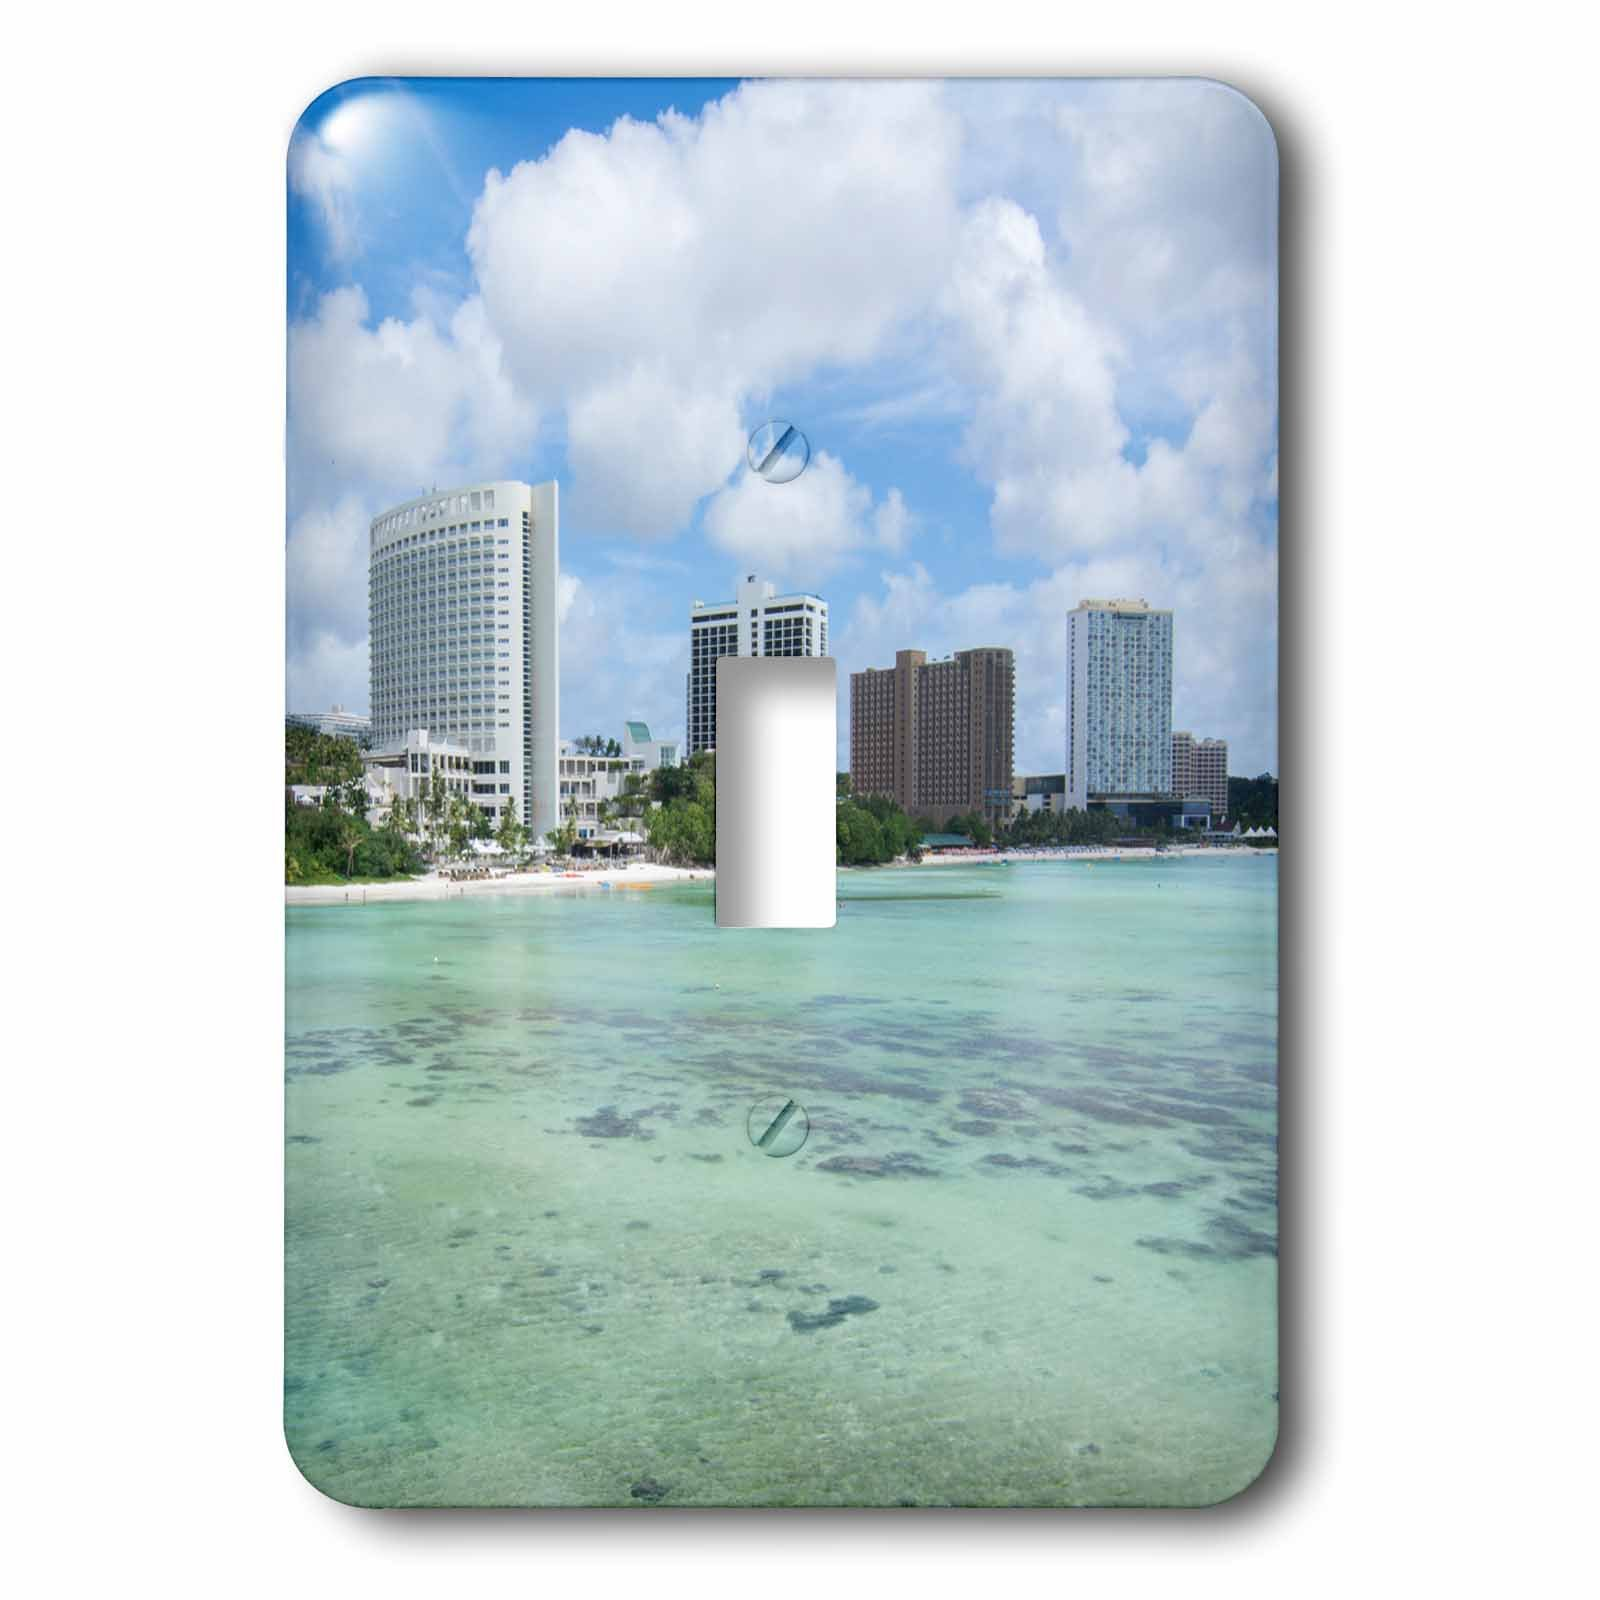 3dRose Danita Delimont - Cities - Guam Territory. Hotels line beach with clear tropical waters. - Light Switch Covers - single toggle switch (lsp_278126_1)